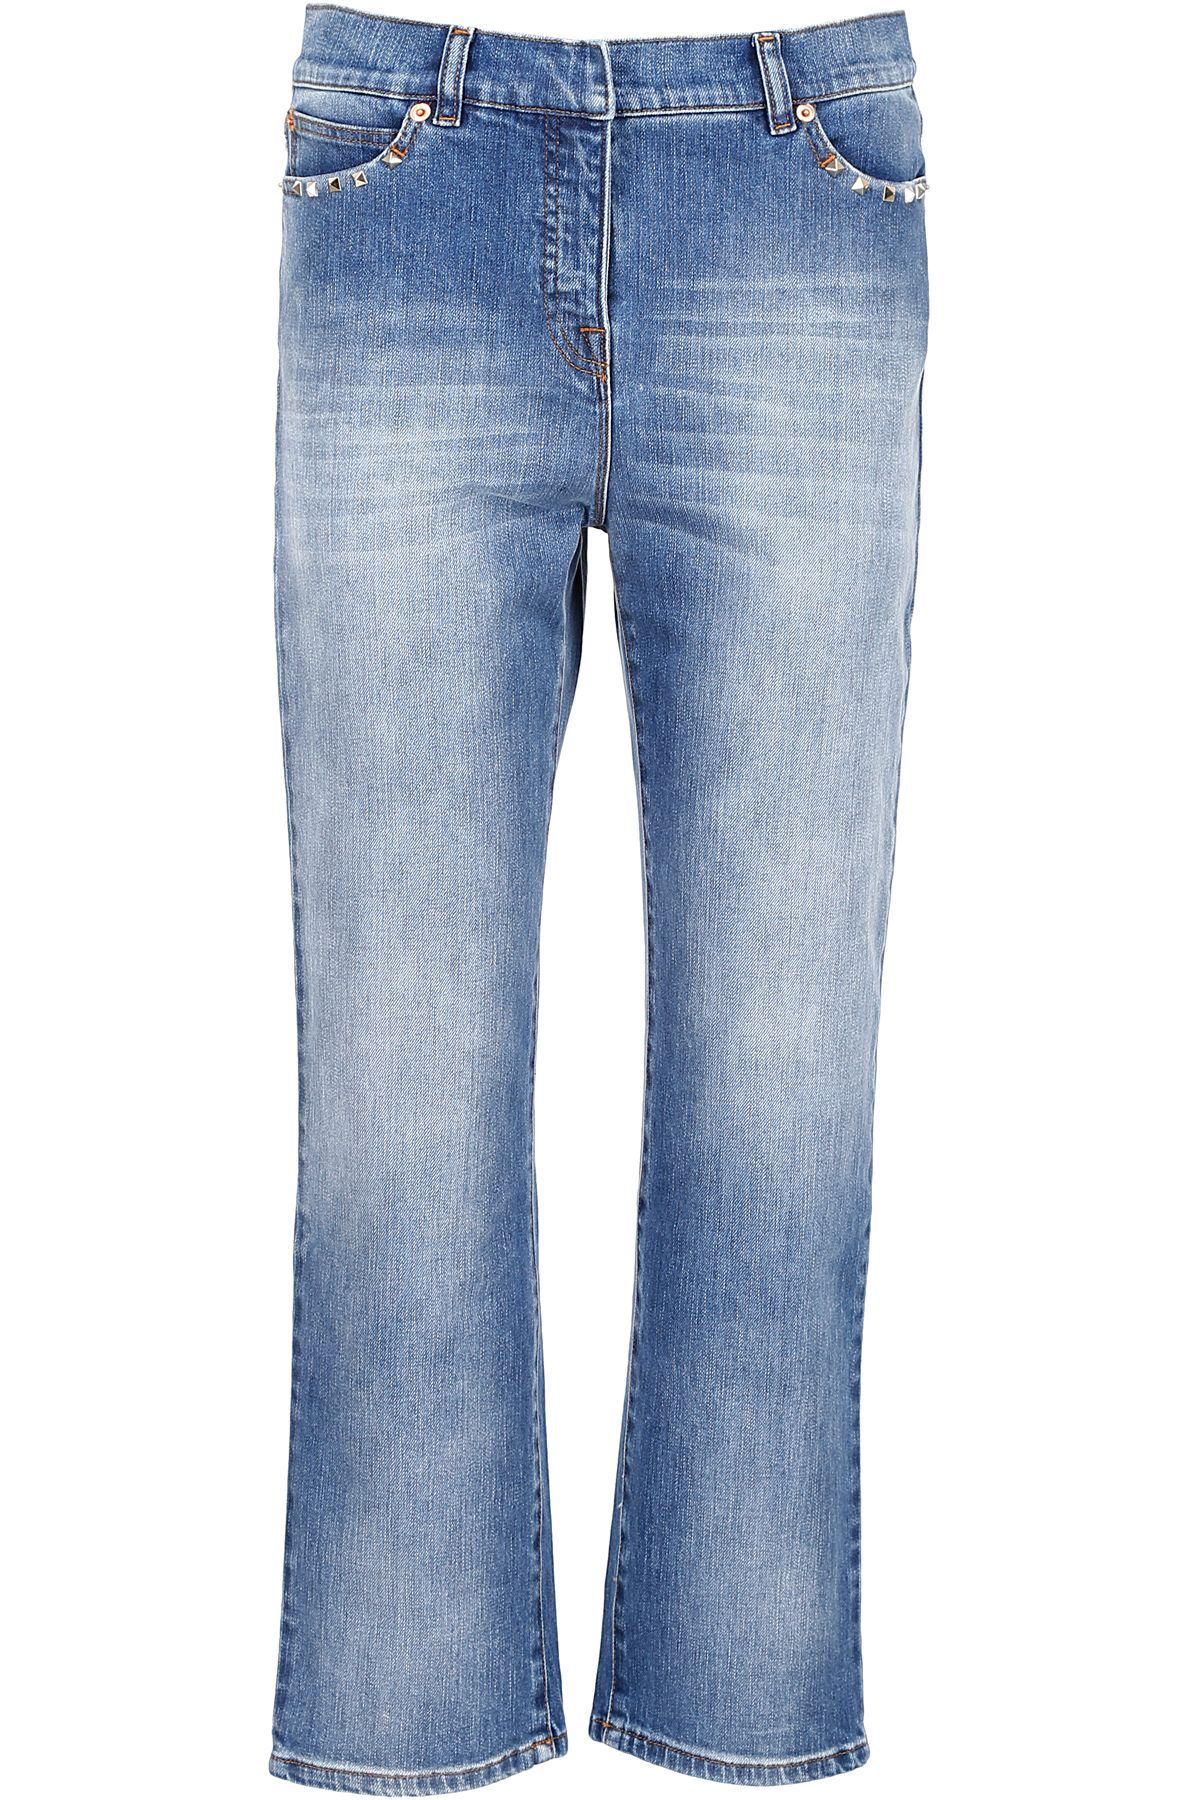 Rockstud Untitled Denim Jeans 9824334